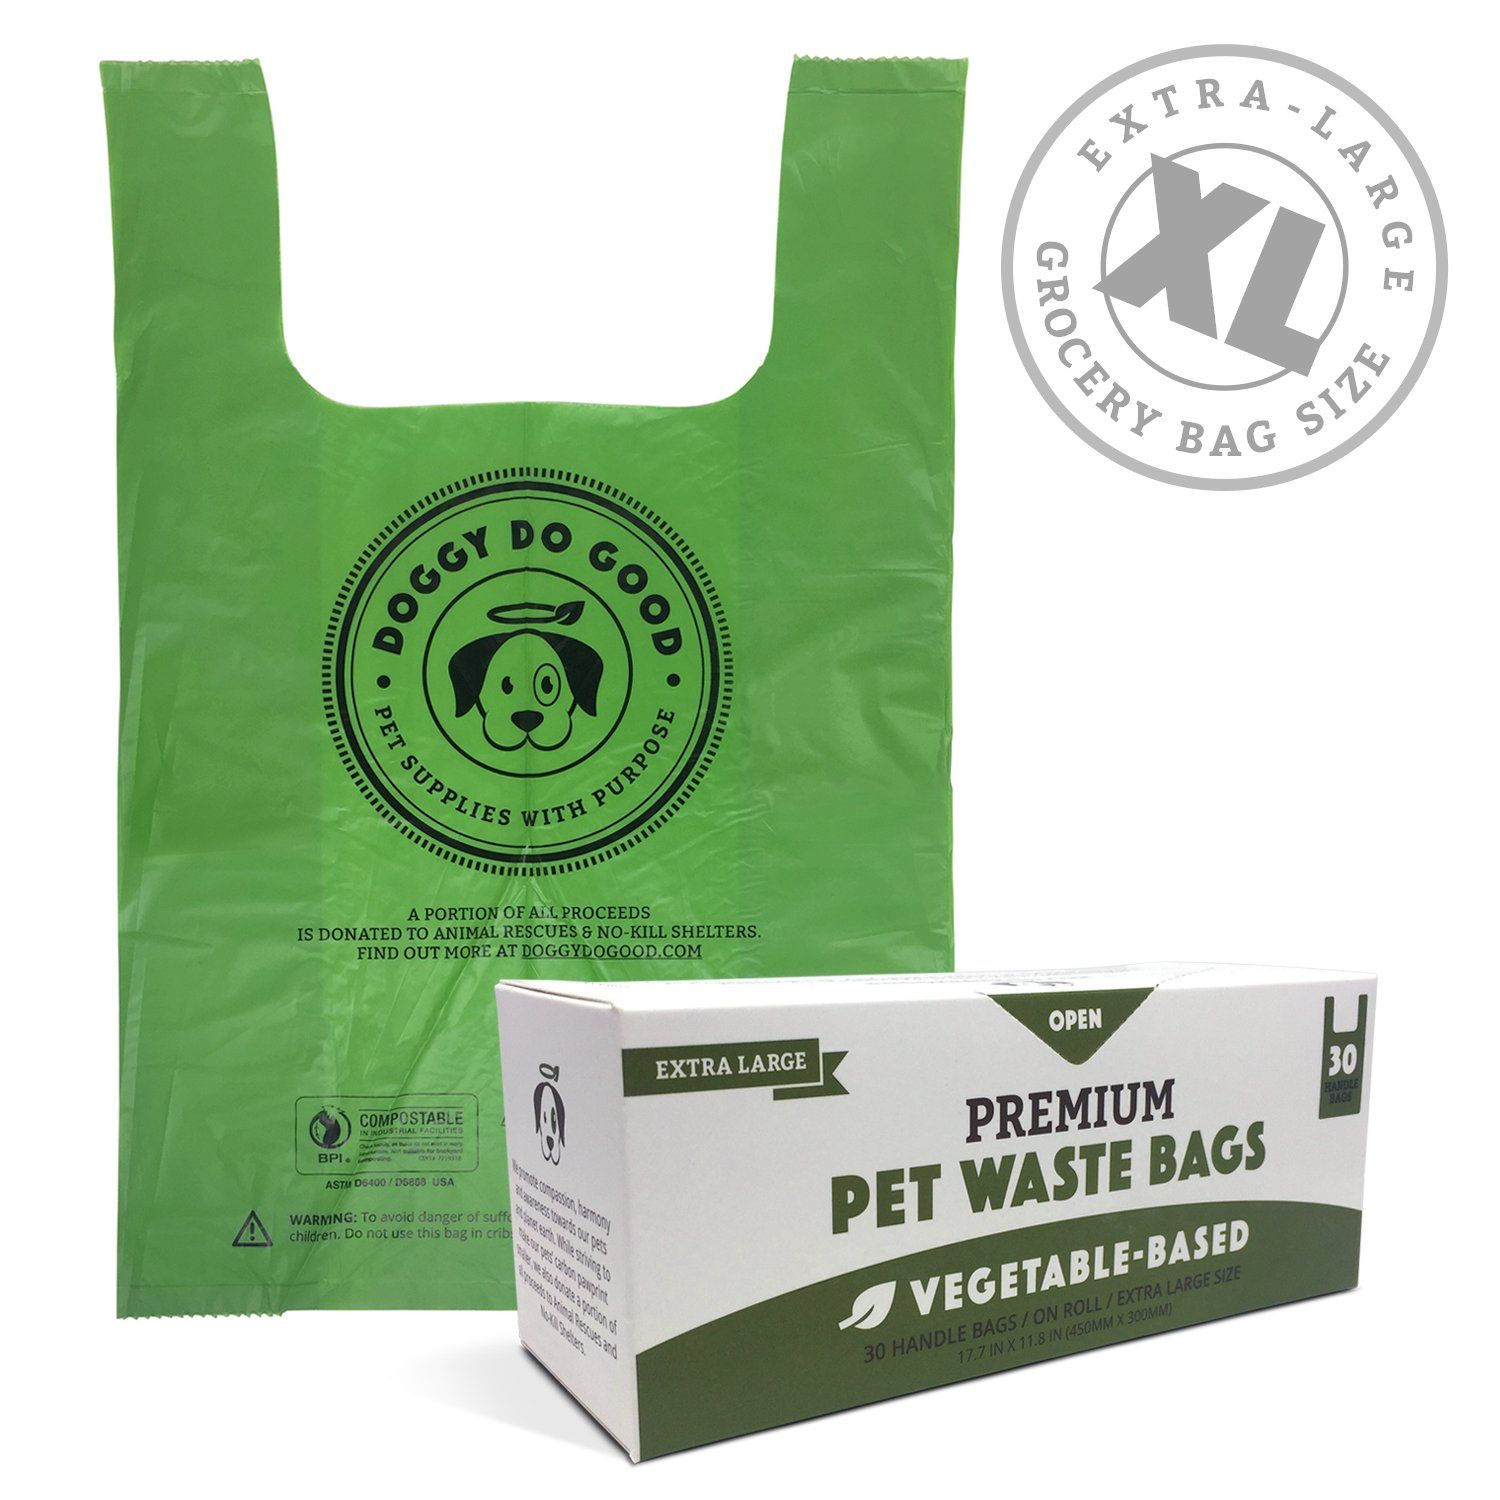 Biodegradable Poop Bags | XL Cat Litter/X-Large Dog Waste Bags, Vegetable-Based & Eco-Friendly, Premium Thickness & Leak Proof, Easy-Tie Handles, Supports Rescues